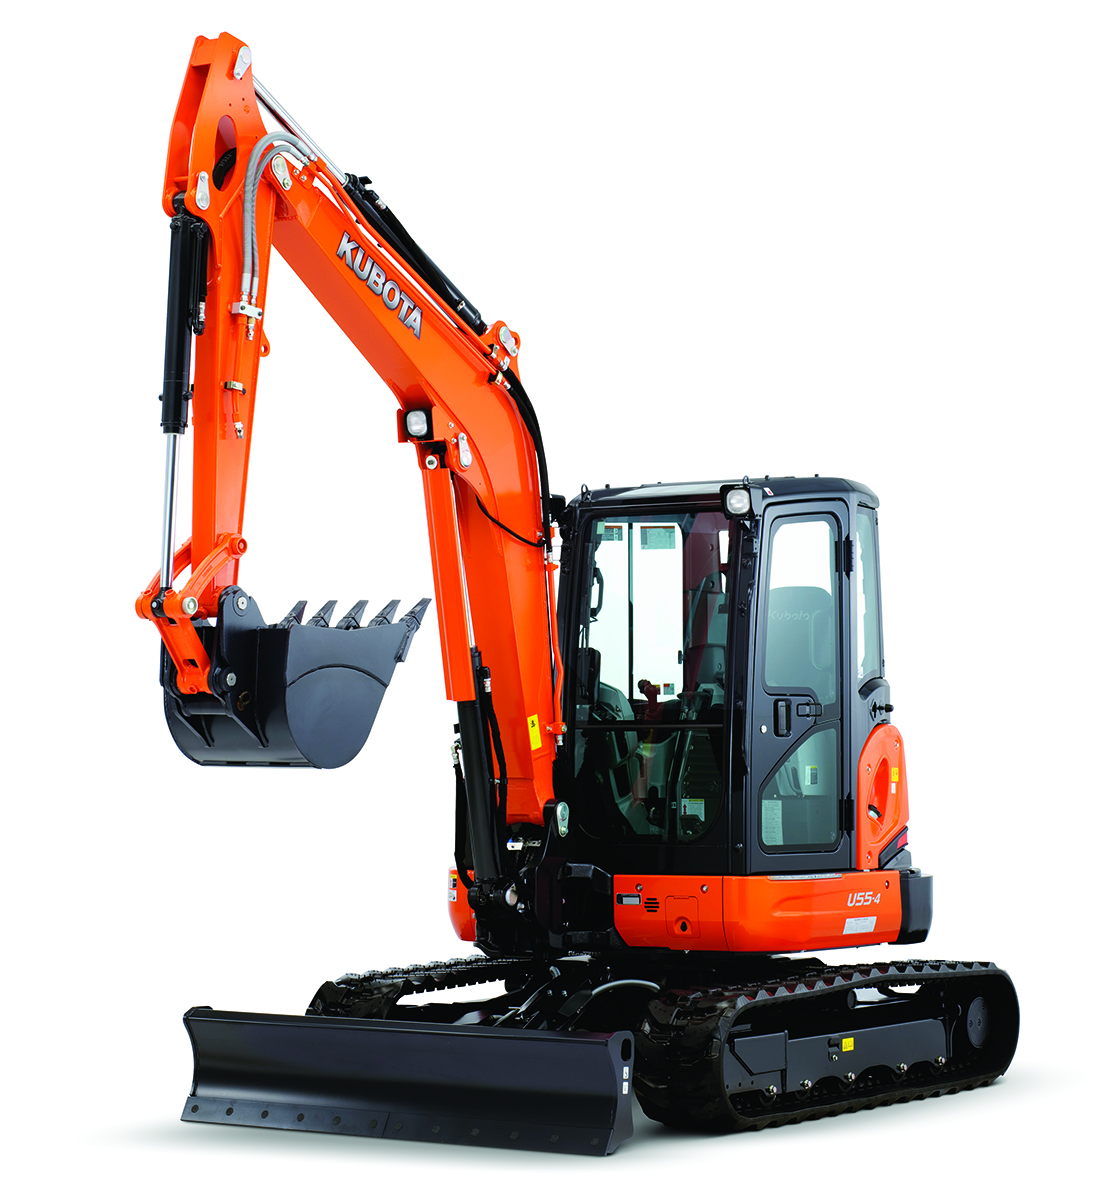 Kubogta U55-4 Tight Tail Swing Compact Excavator